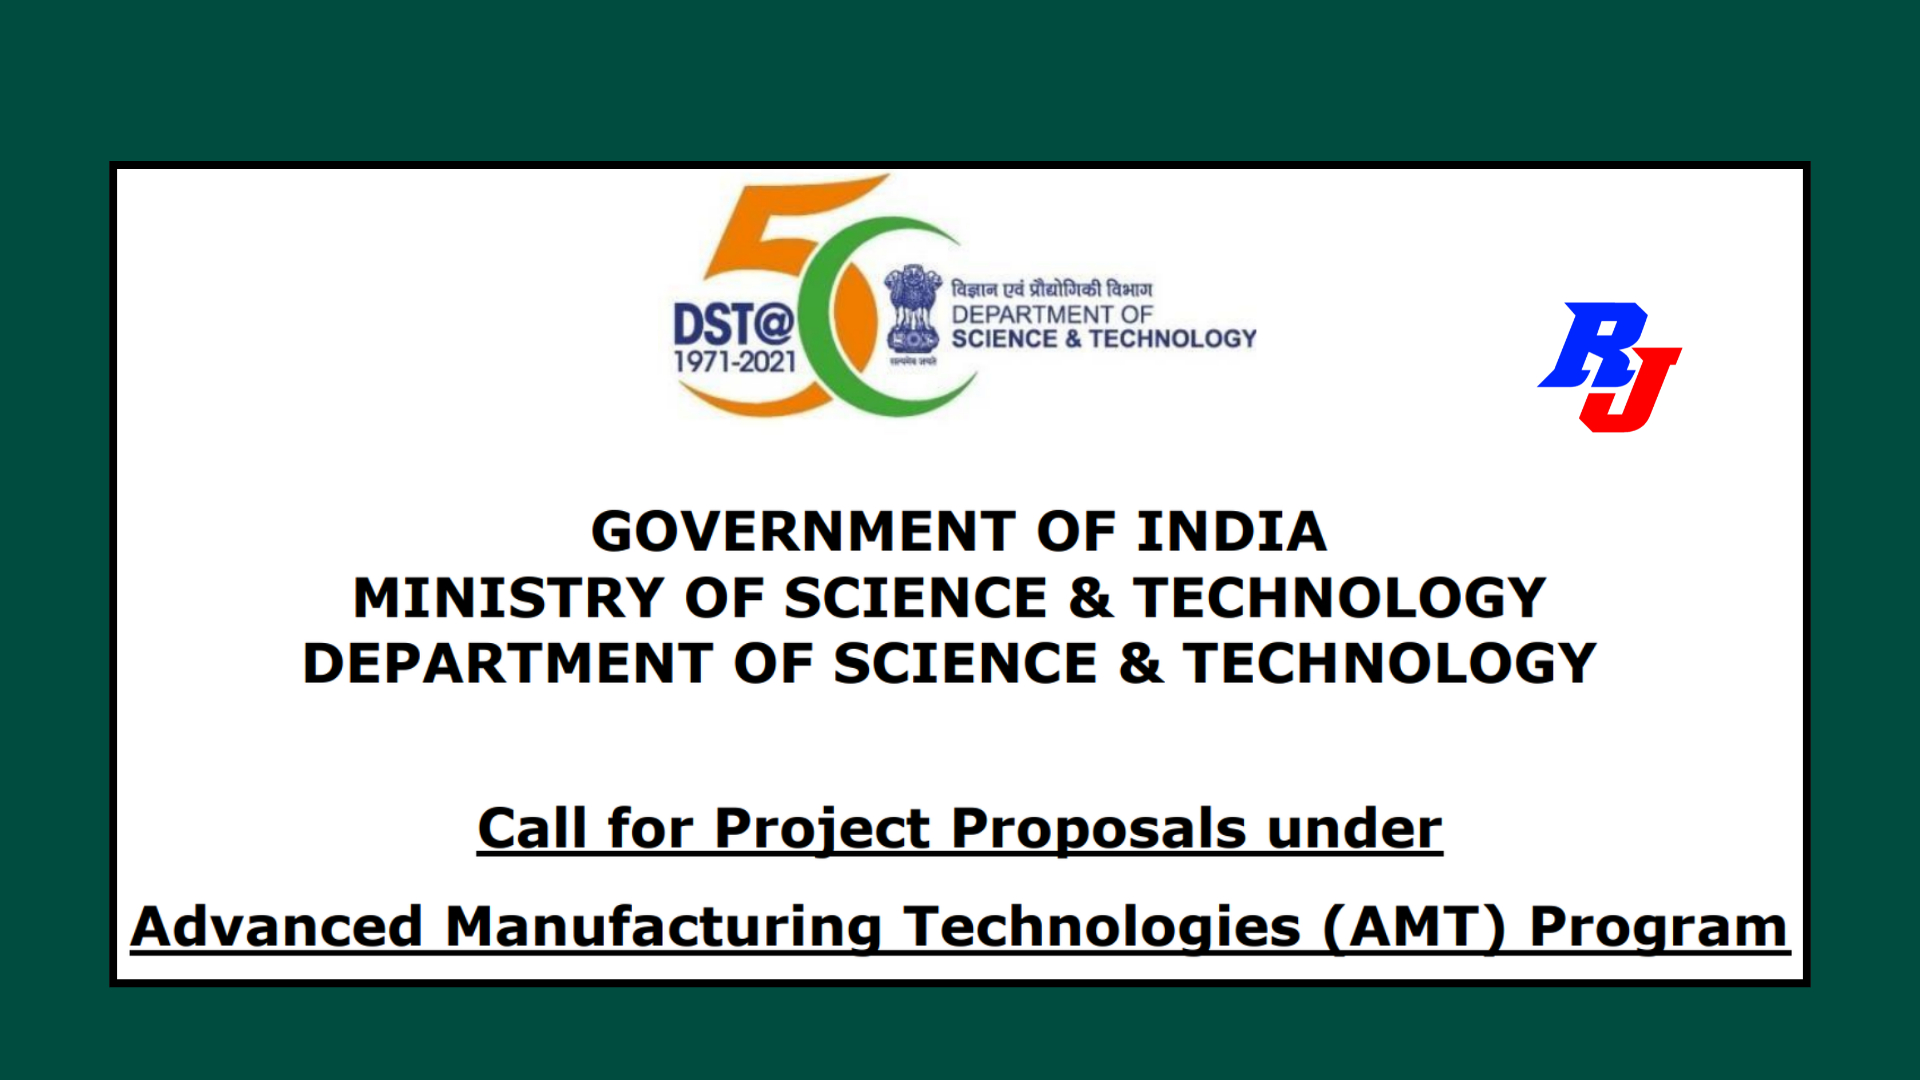 Call for Project Proposals under Advanced Manufacturing Technologies (AMT) Program- DST